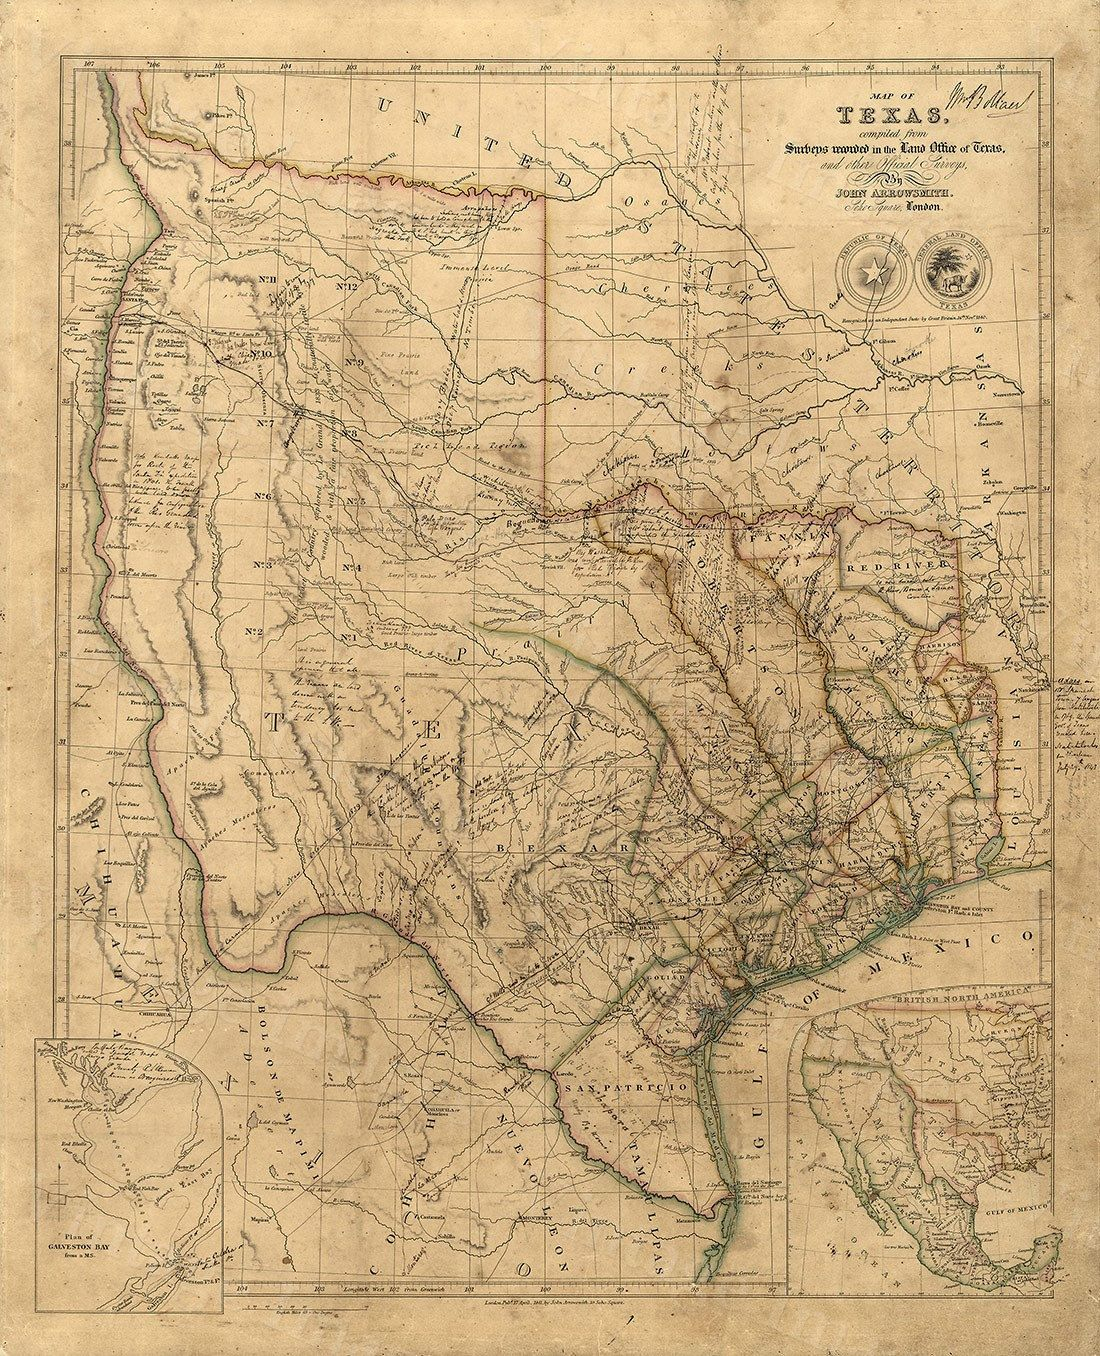 Old Texas Wall Map 1841 Historical Texas Map Antique Decorator Style - Vintage Texas Map